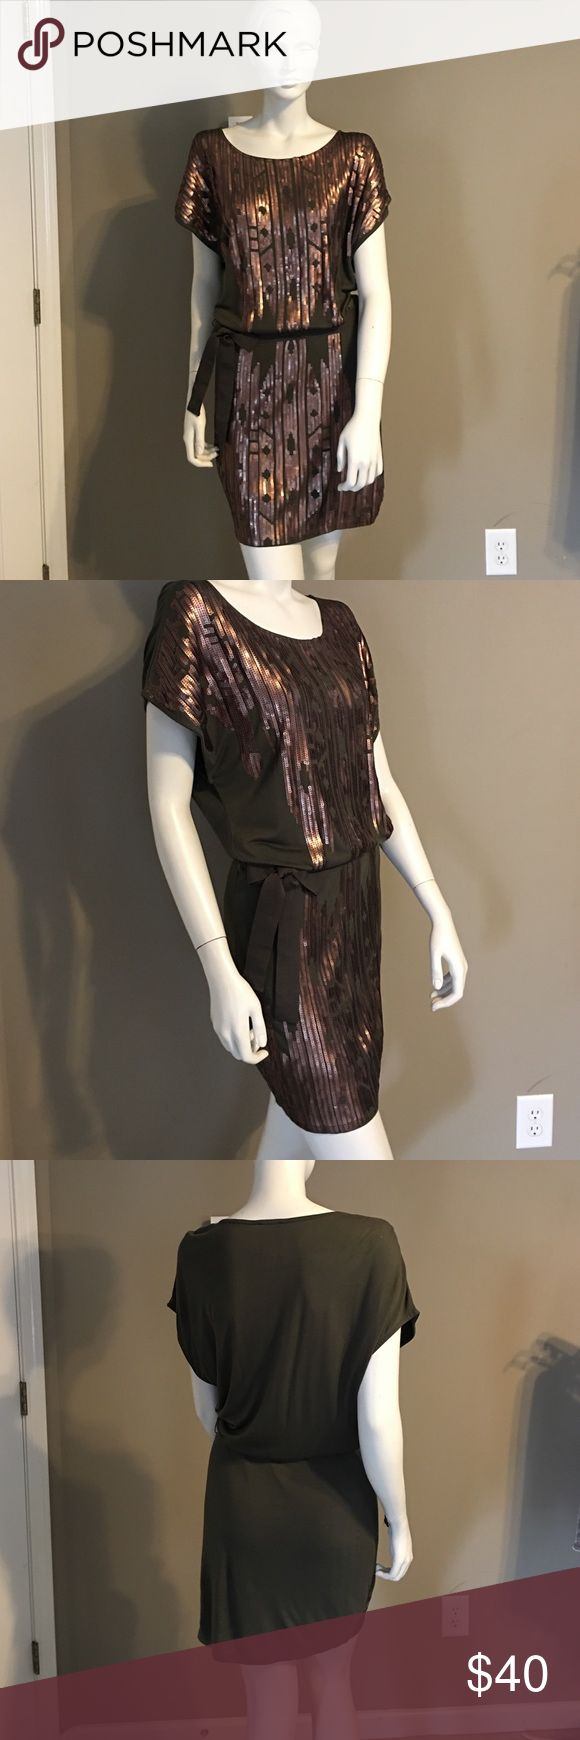 MNG by Mango Jeans Sequin Accent Dress MNG by Mango Jeans dress with bronze sequins on the front. No missing sequins. Bottom part of the dress is lined. Color - olive.  No trades. Firm price, no offers. Mango Dresses Mini